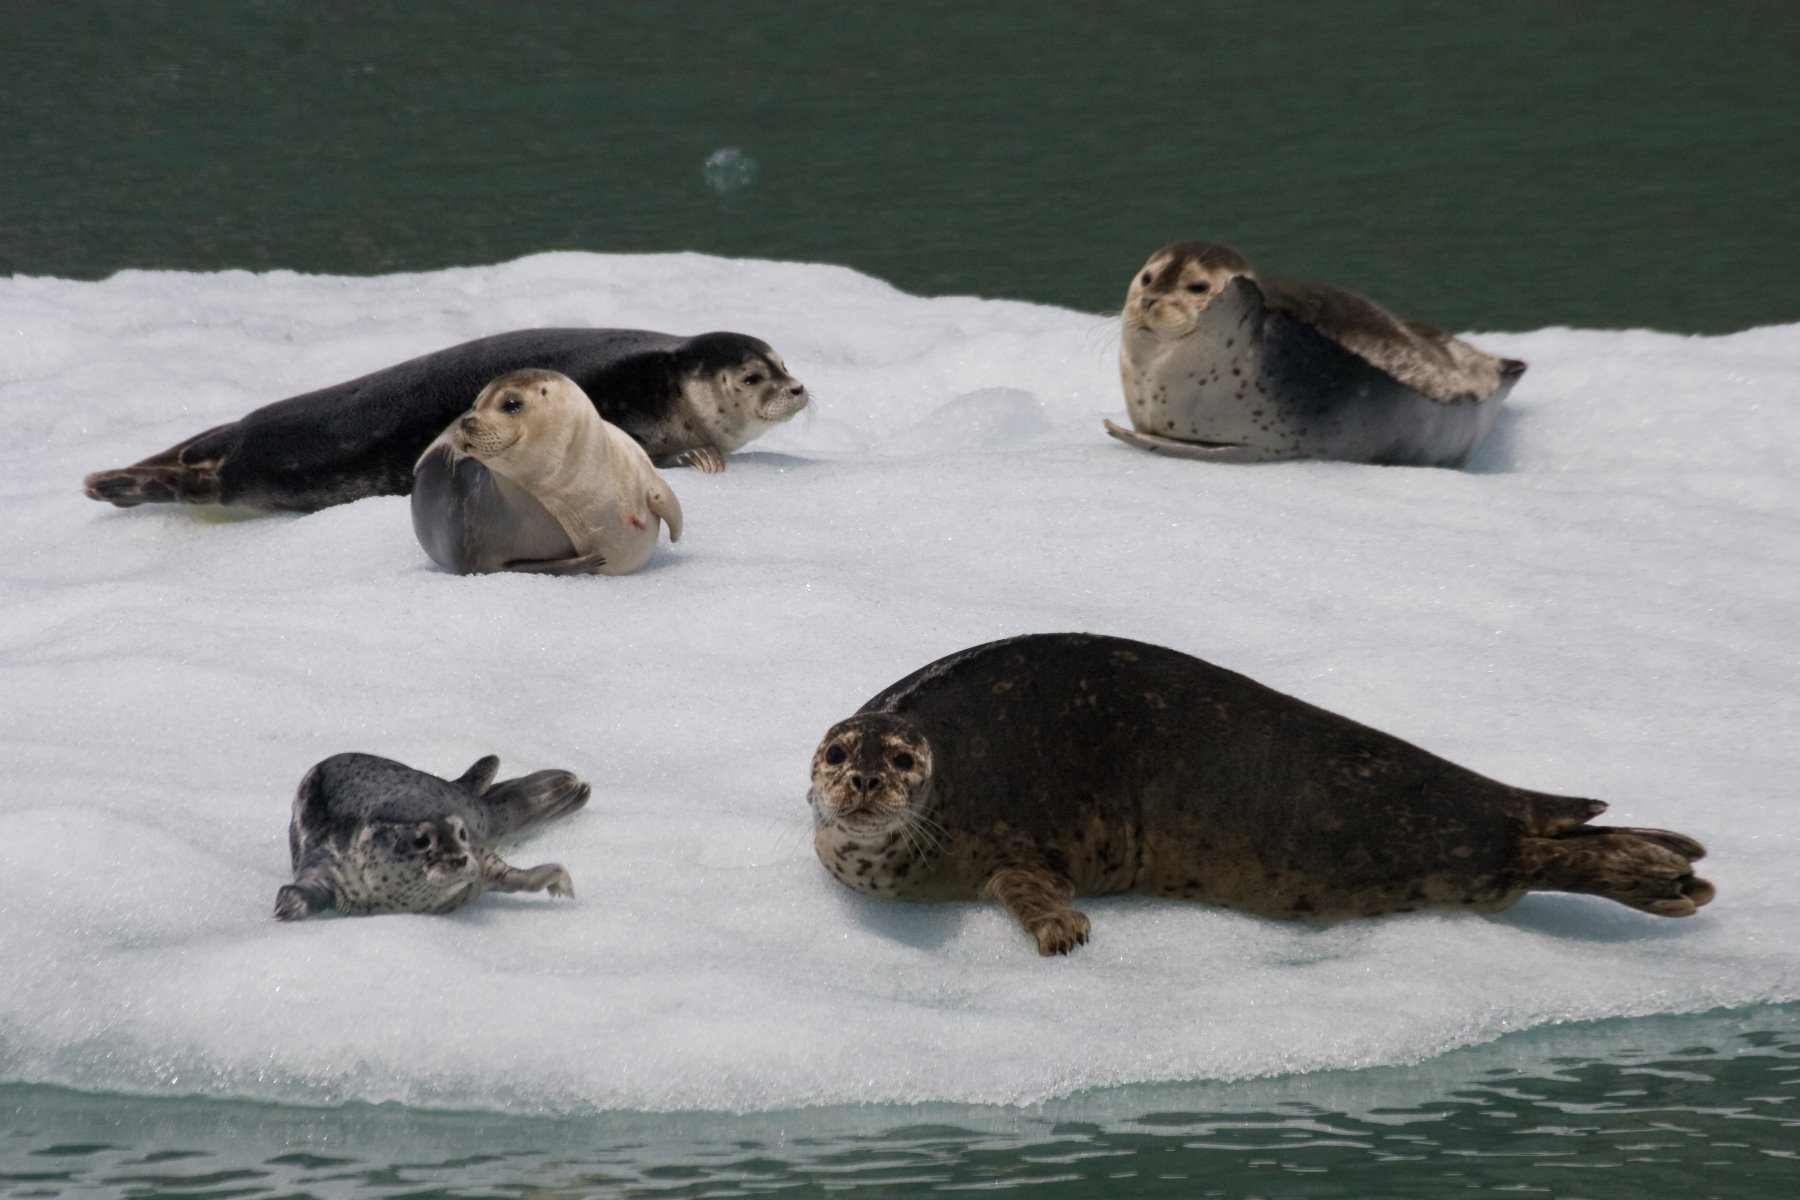 Harbor seals haul out on the ice and rest for extended periods of time.